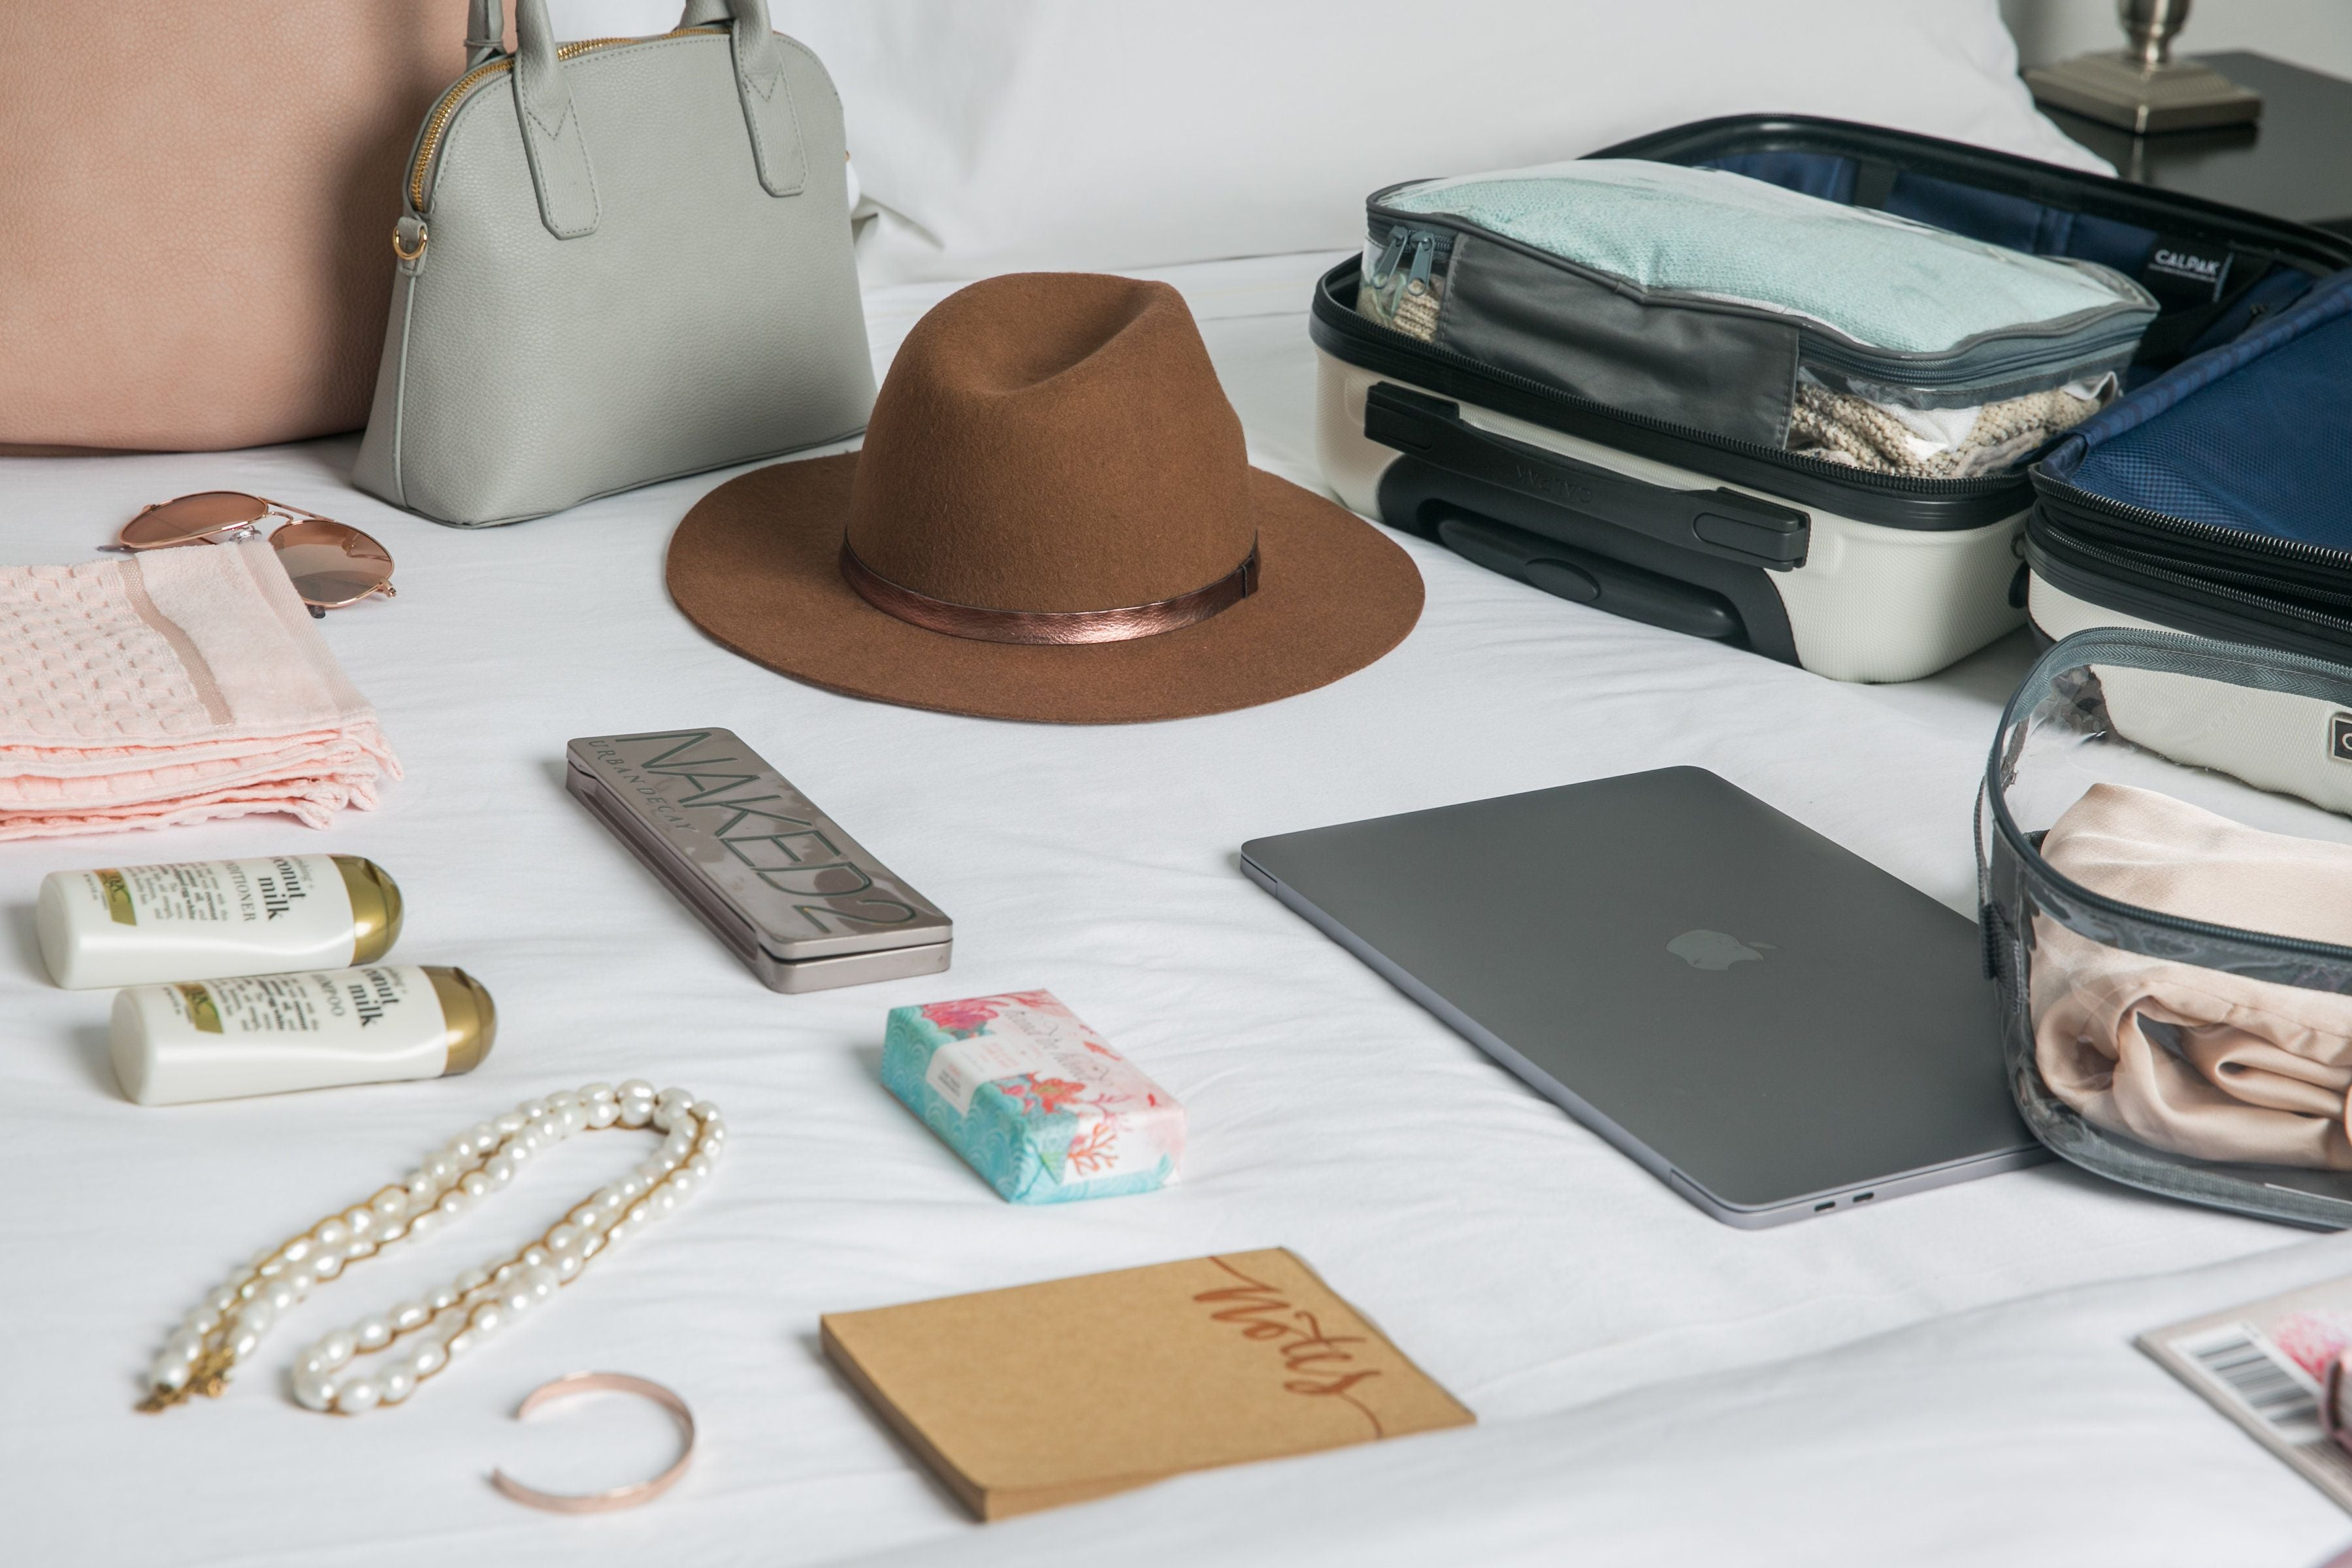 Travel accessories for the business trip on the bed